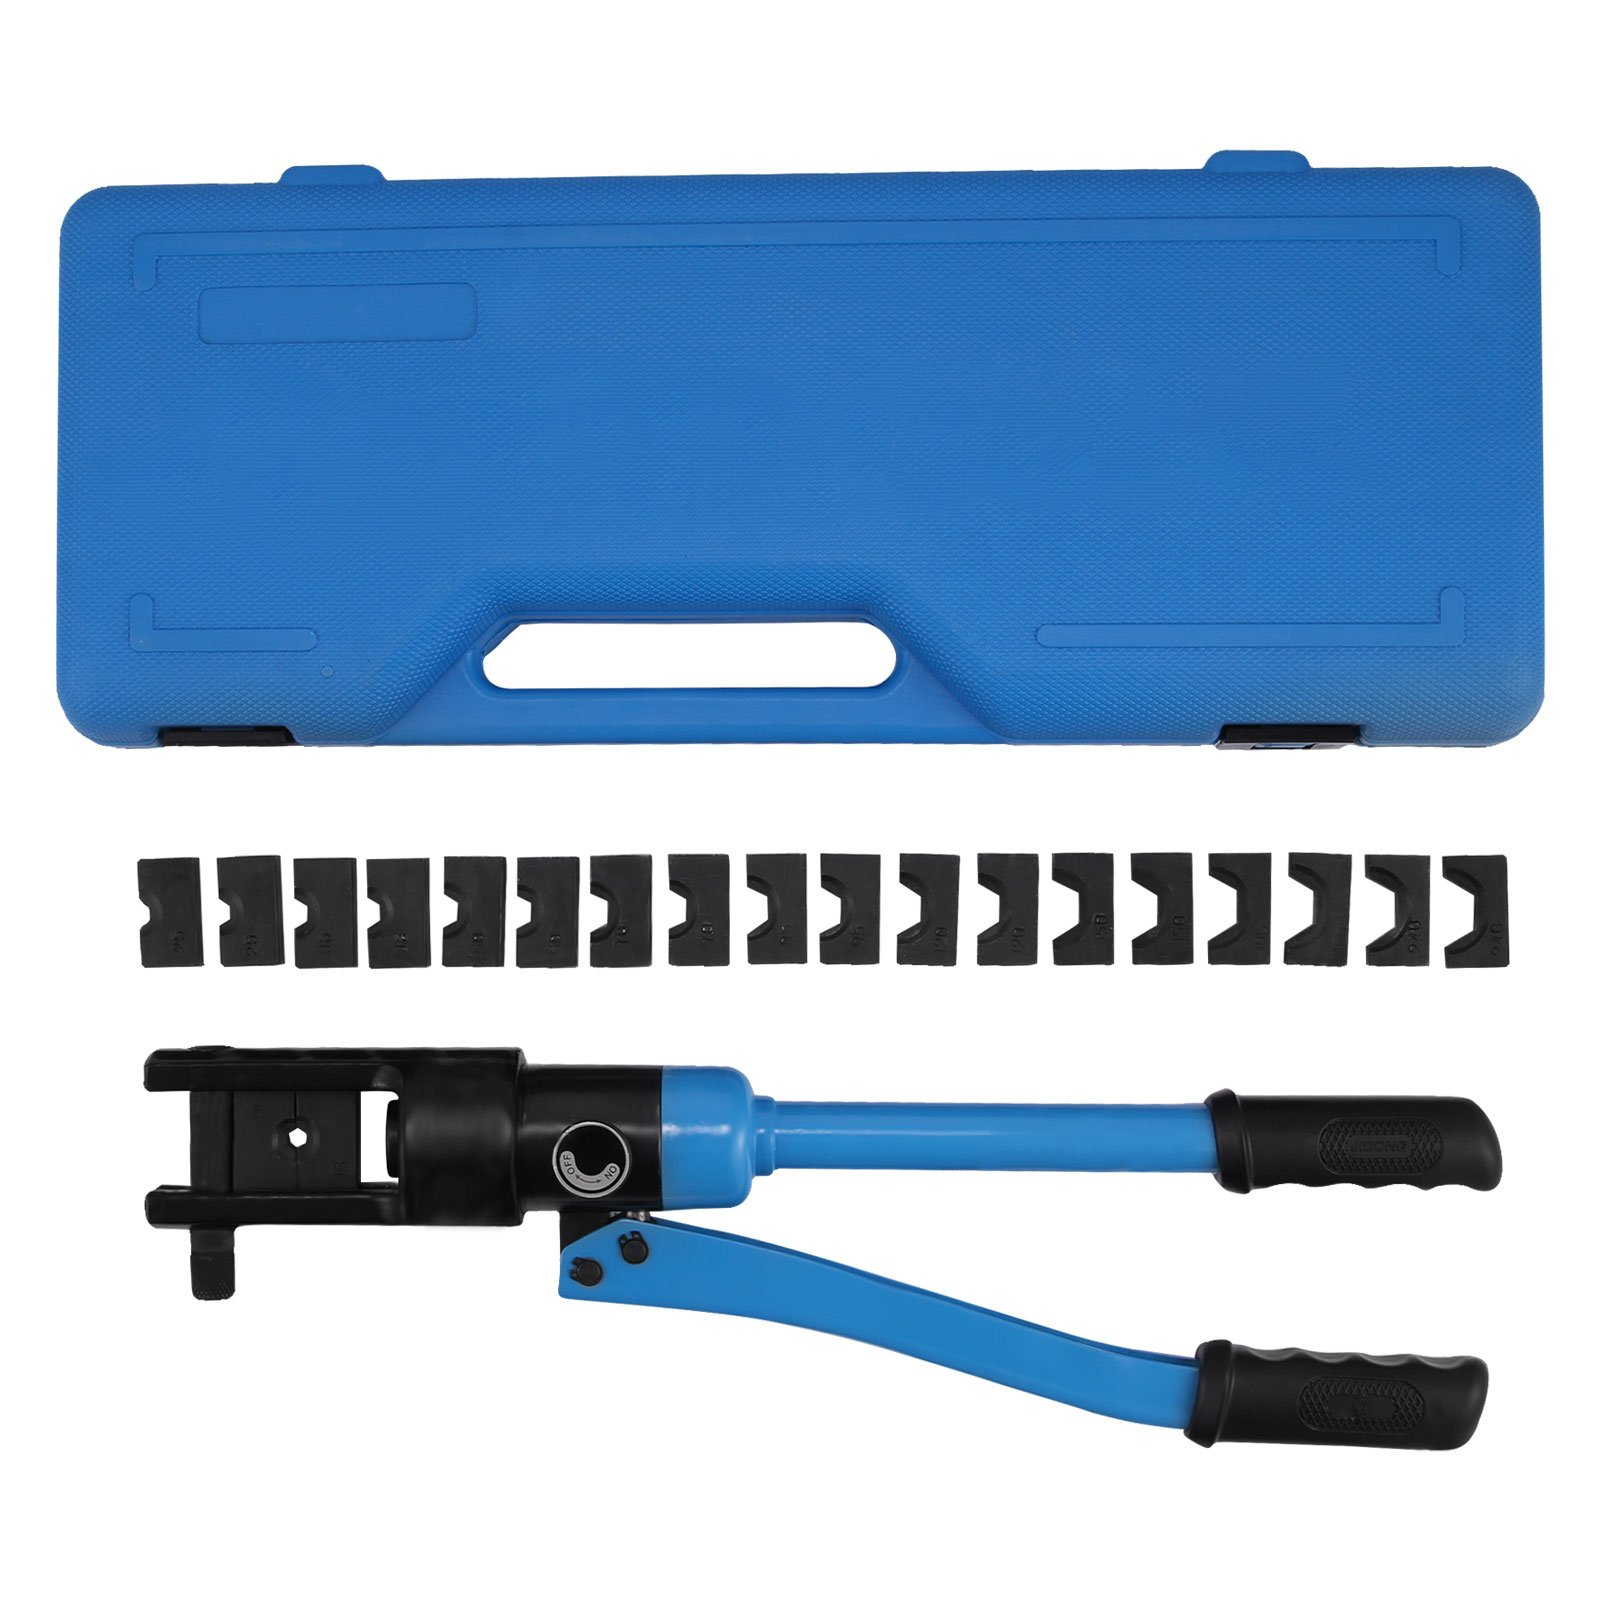 TOTOOL Hydraulic Wire Terminal Crimper Battery Cable Lug Crimping Tool 12 TON Hydraulic Lug Tool 6 AWG to 500 MCM Electrical Crimping Tool 10 Dies (12T 10Dies)